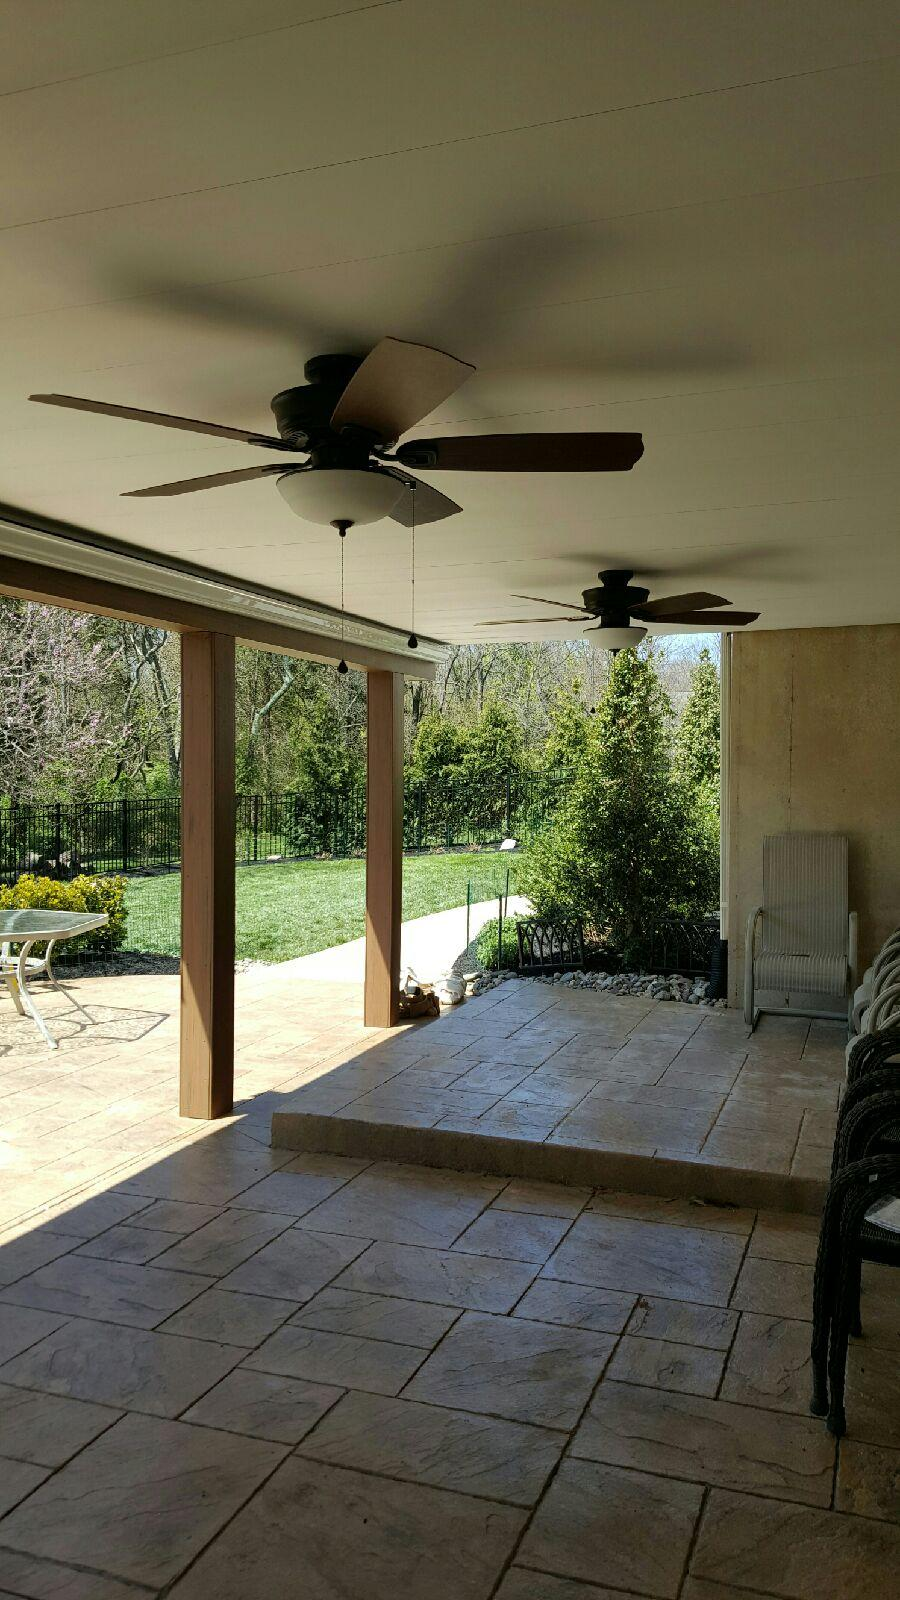 Outdoor ceiling fans benefits and choosing the right type outdoor ceiling fans aloadofball Image collections